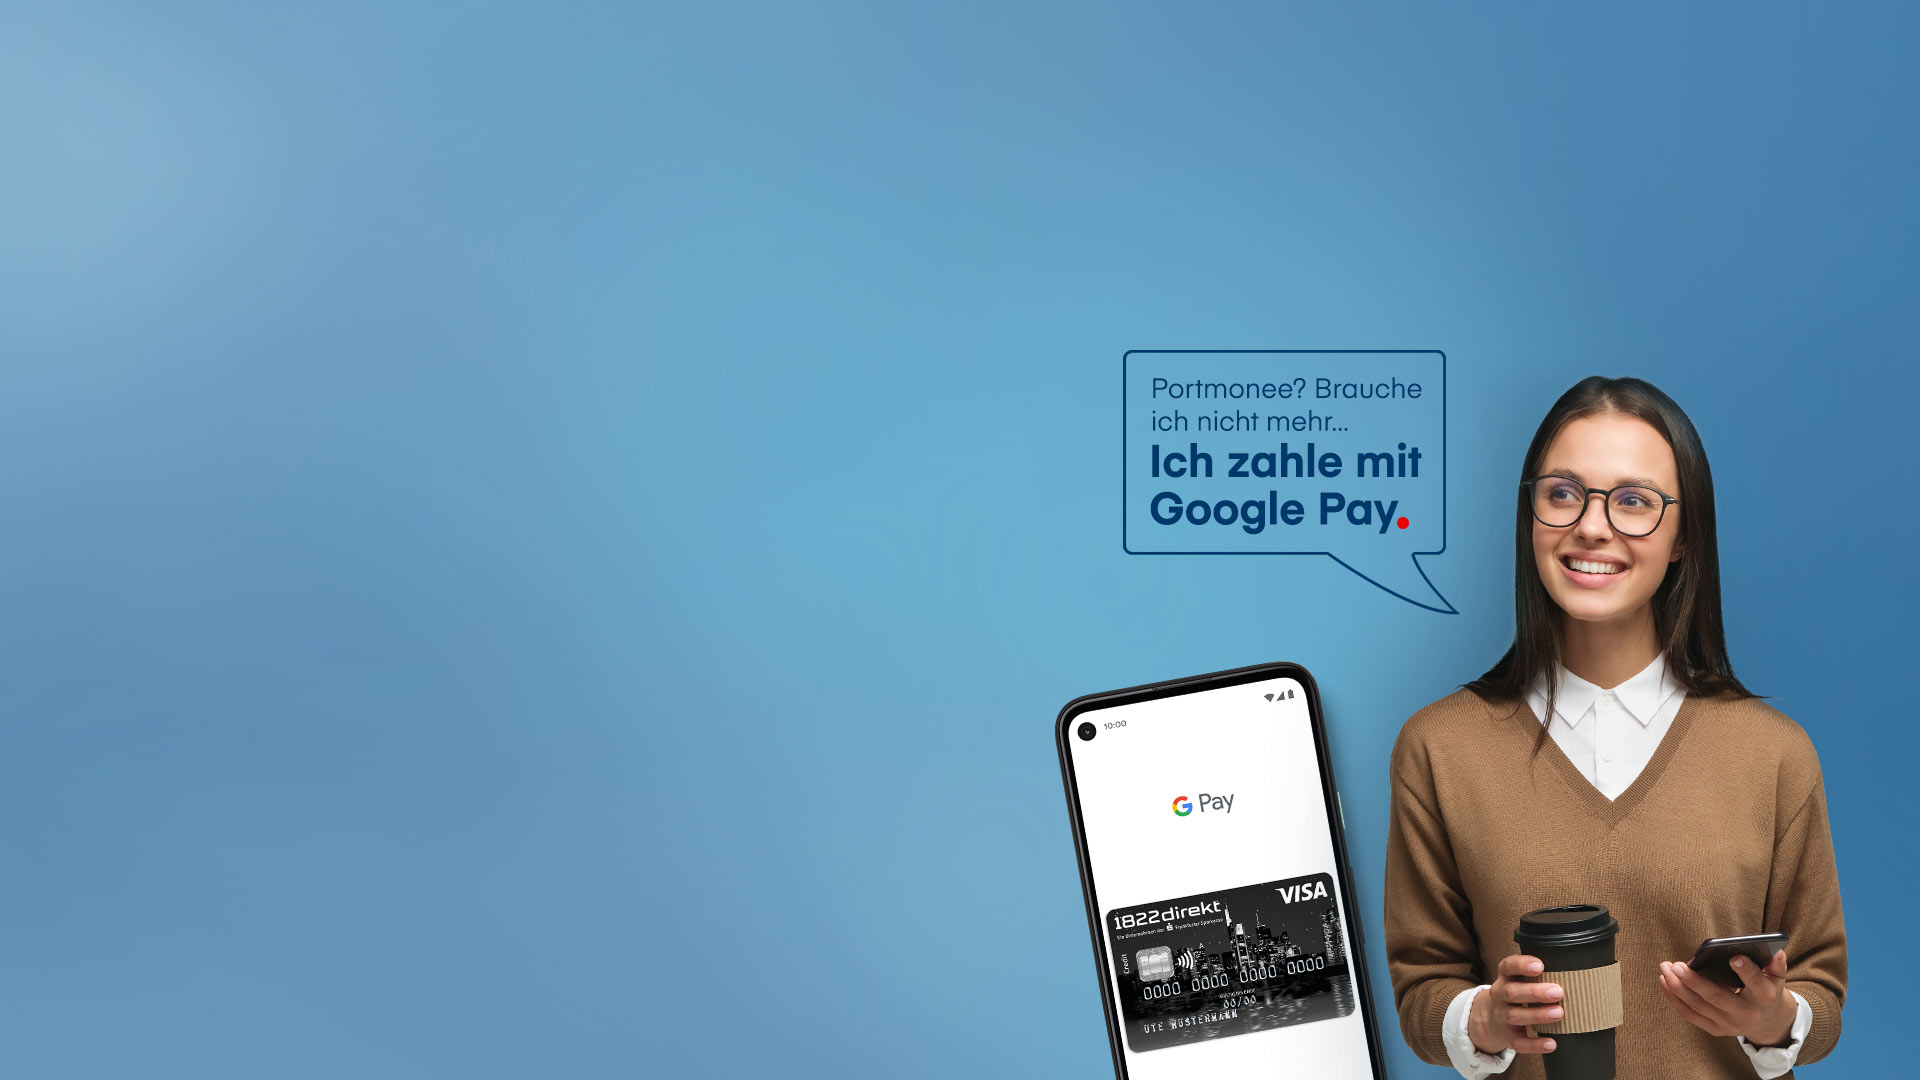 Google Pay - 1822direkt